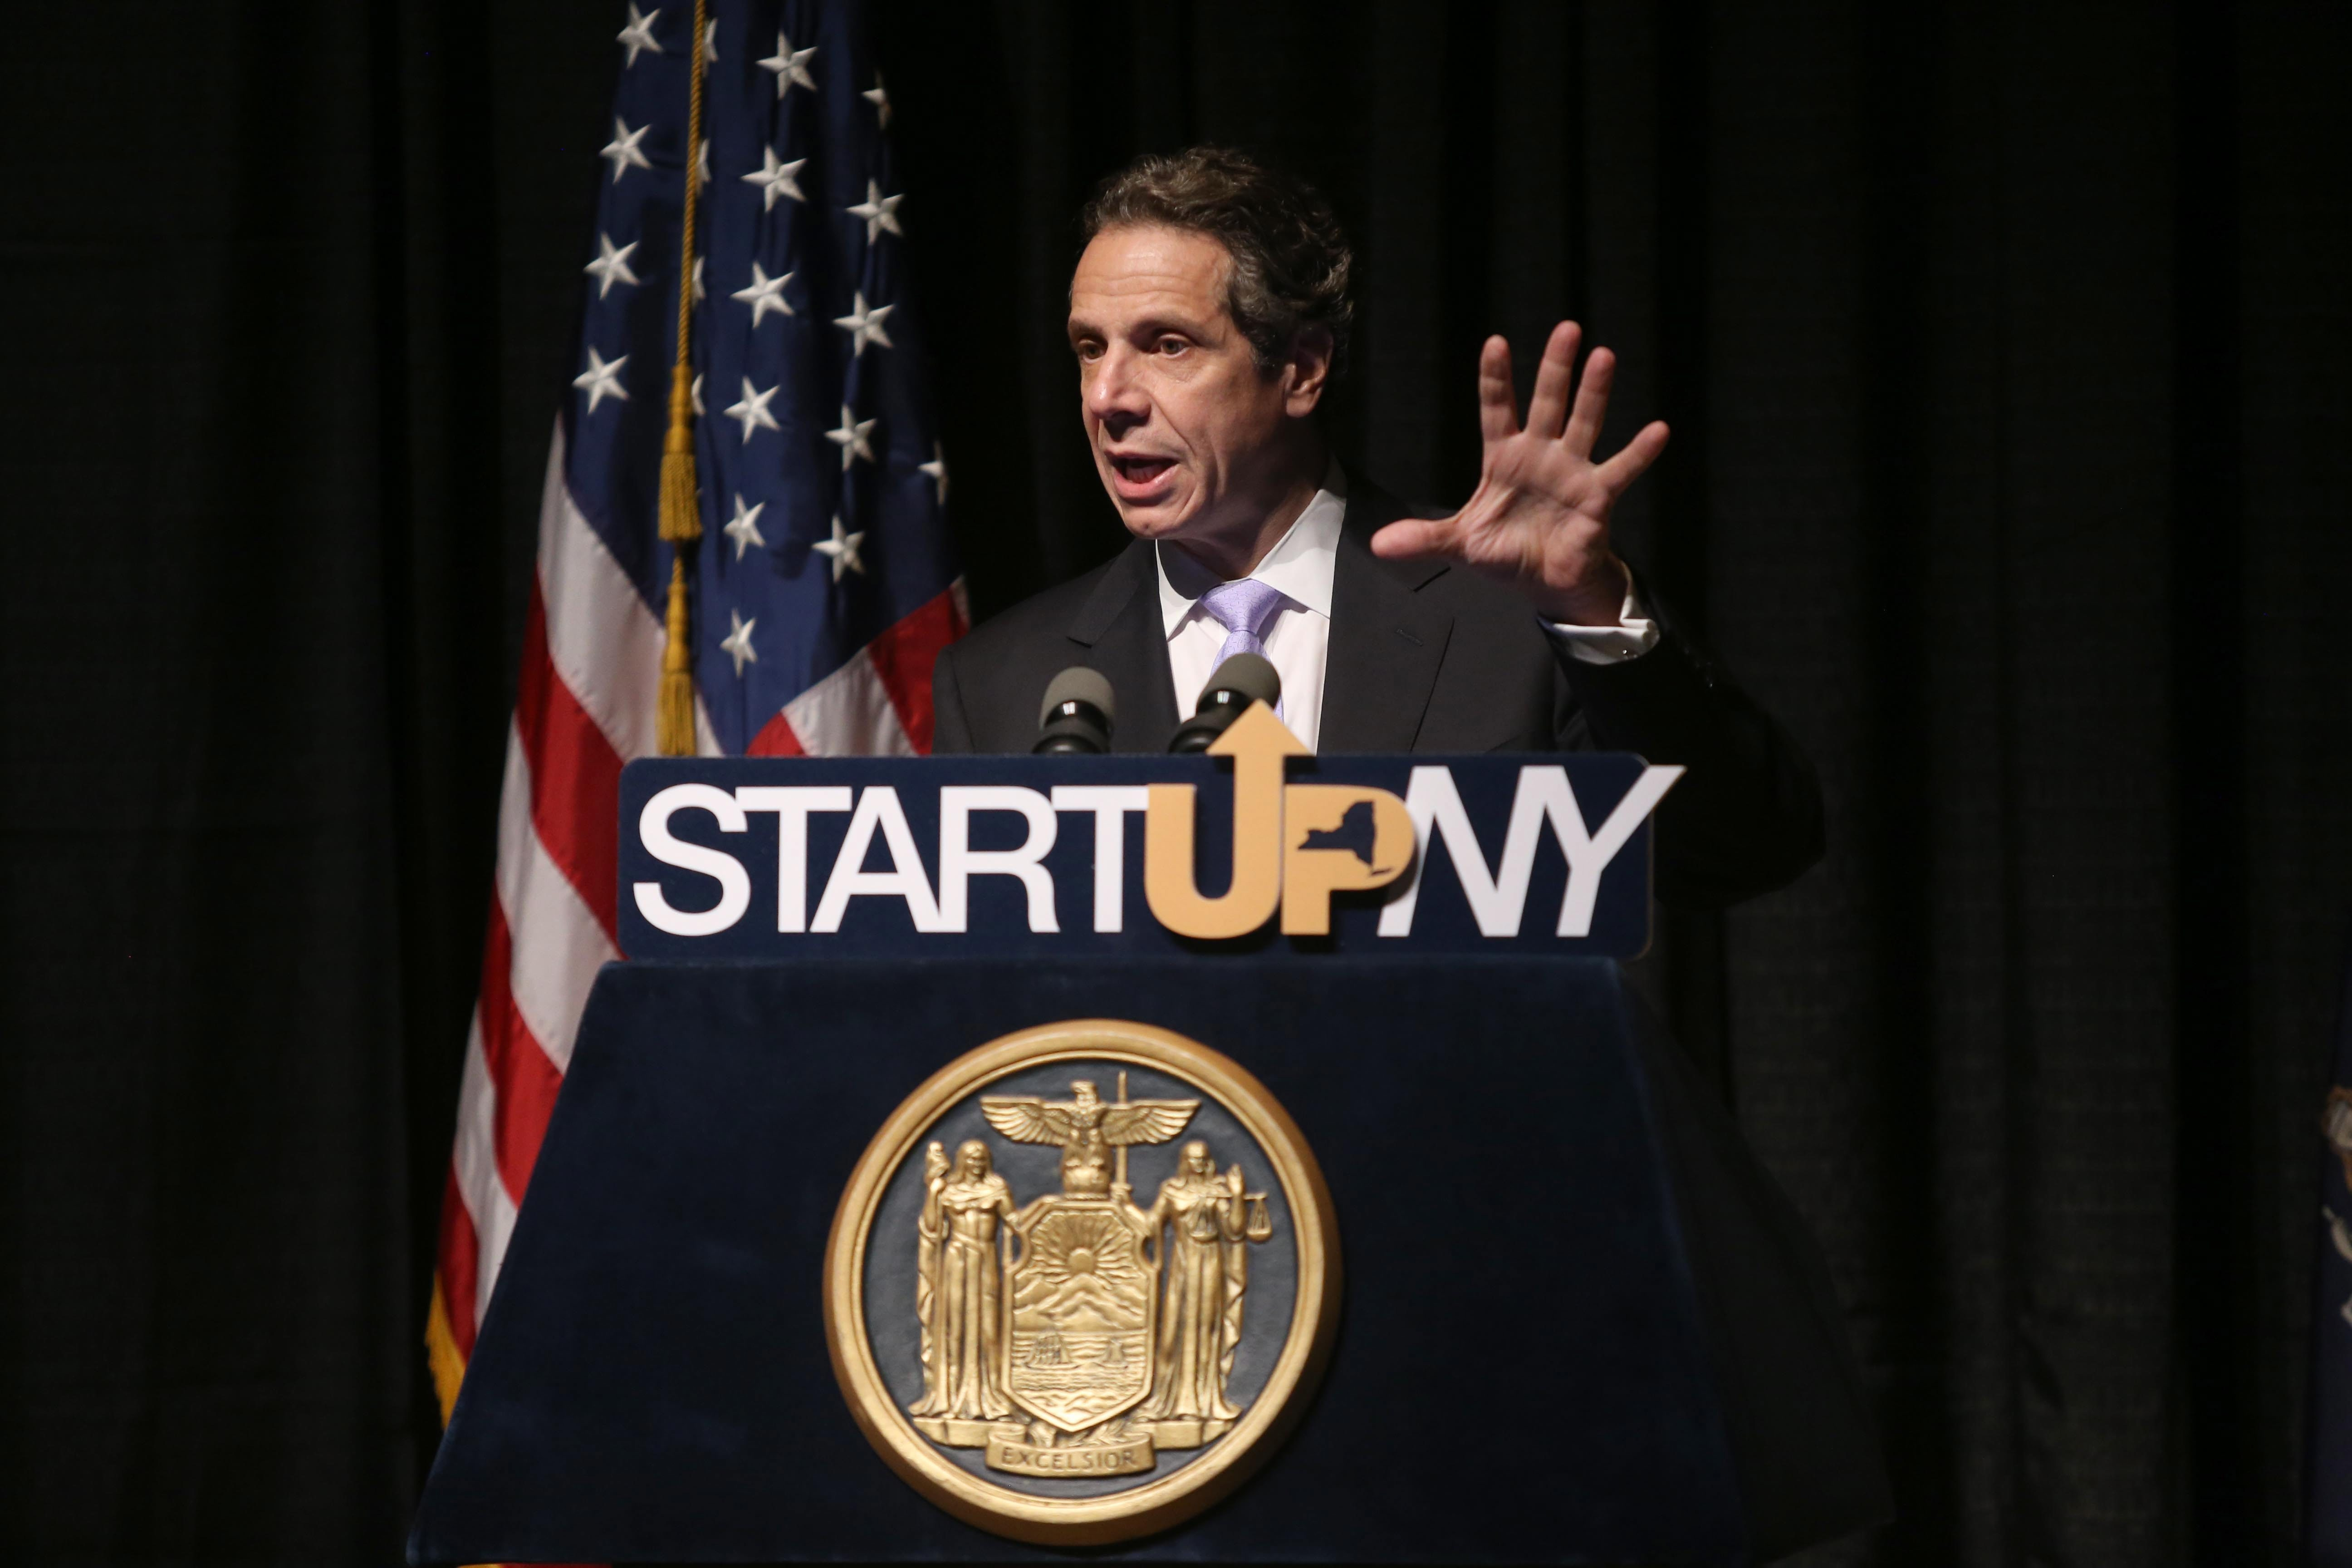 Start-Up NY, announced less than a year ago by Gov. Andrew M. Cuomo at SUNY Buffalo State, has booked its first seven companies into sites at the University at Buffalo. (Buffalo News file photo)